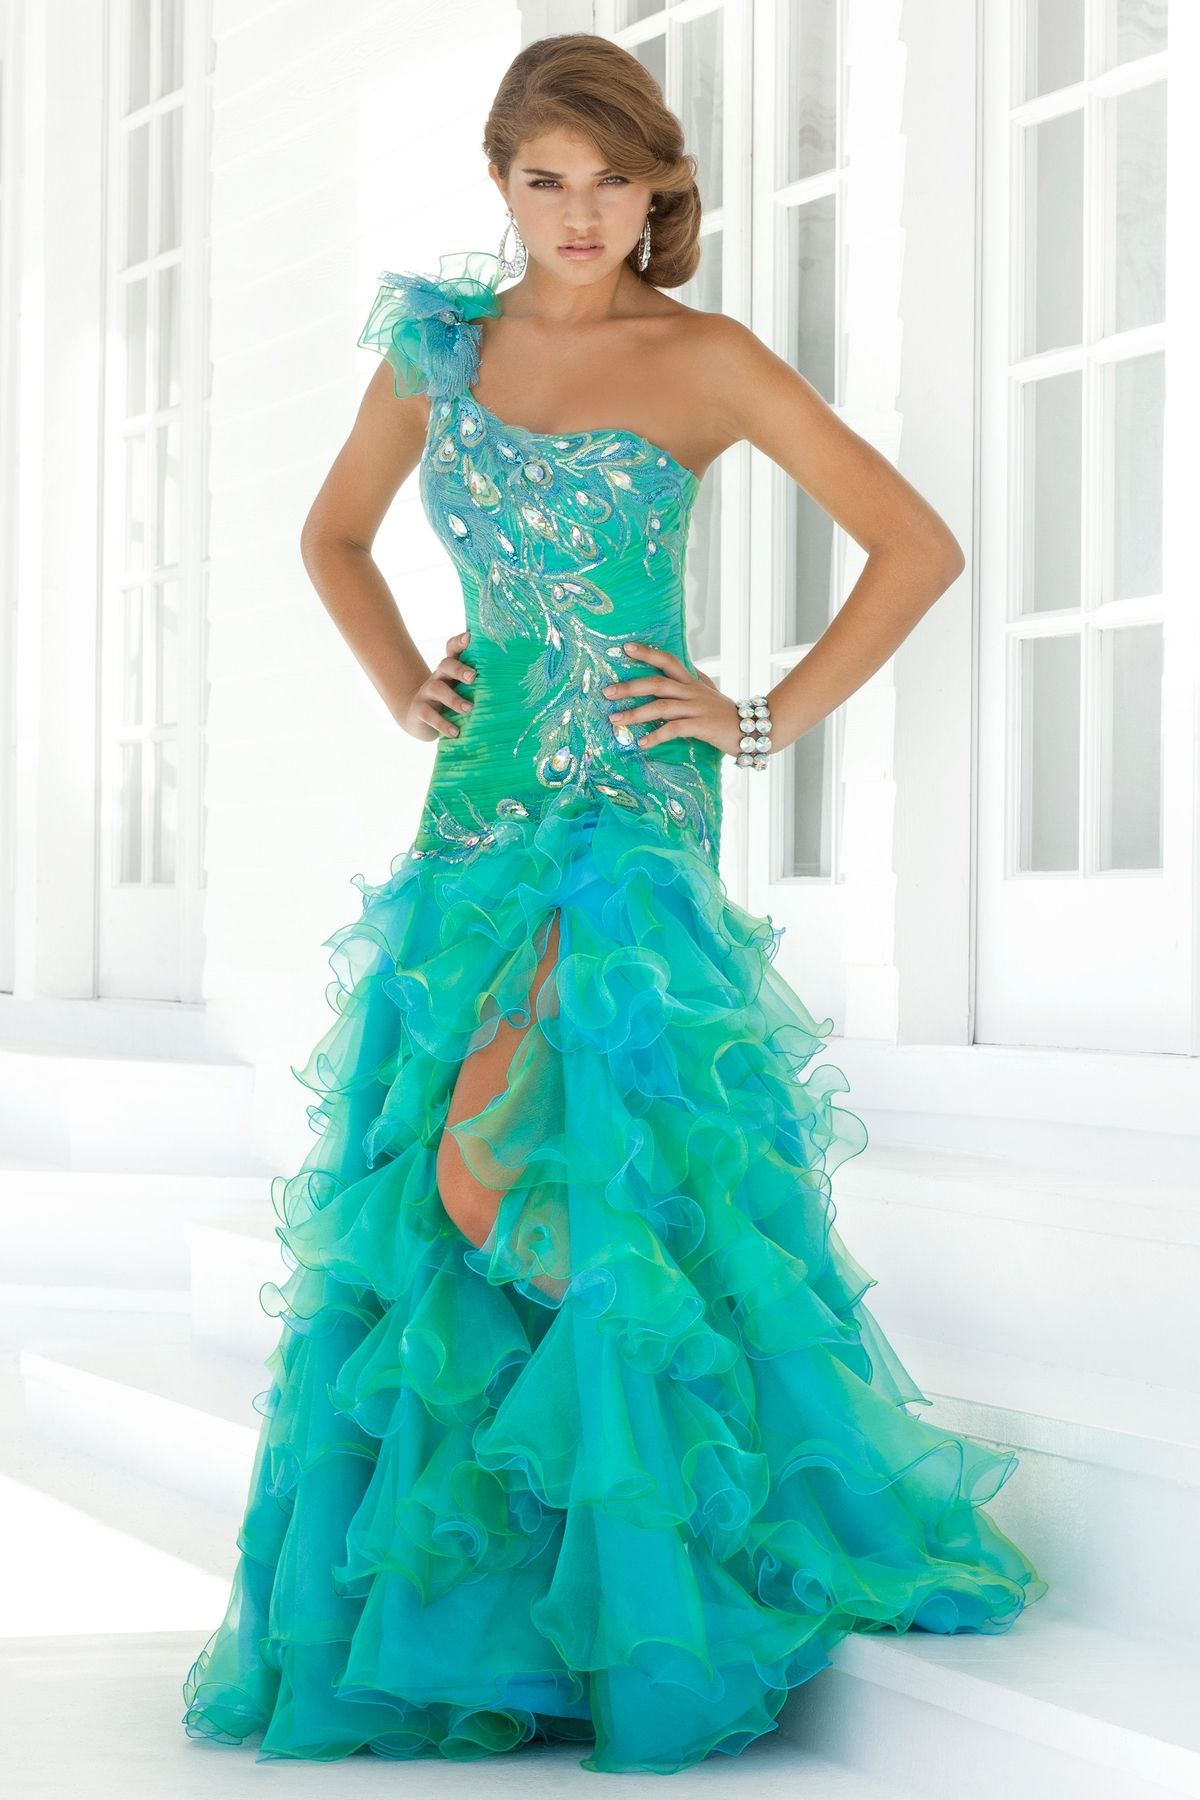 Sexy2013 Peacock Mermaid Party Prom Dress Organza Pageant Evening ...